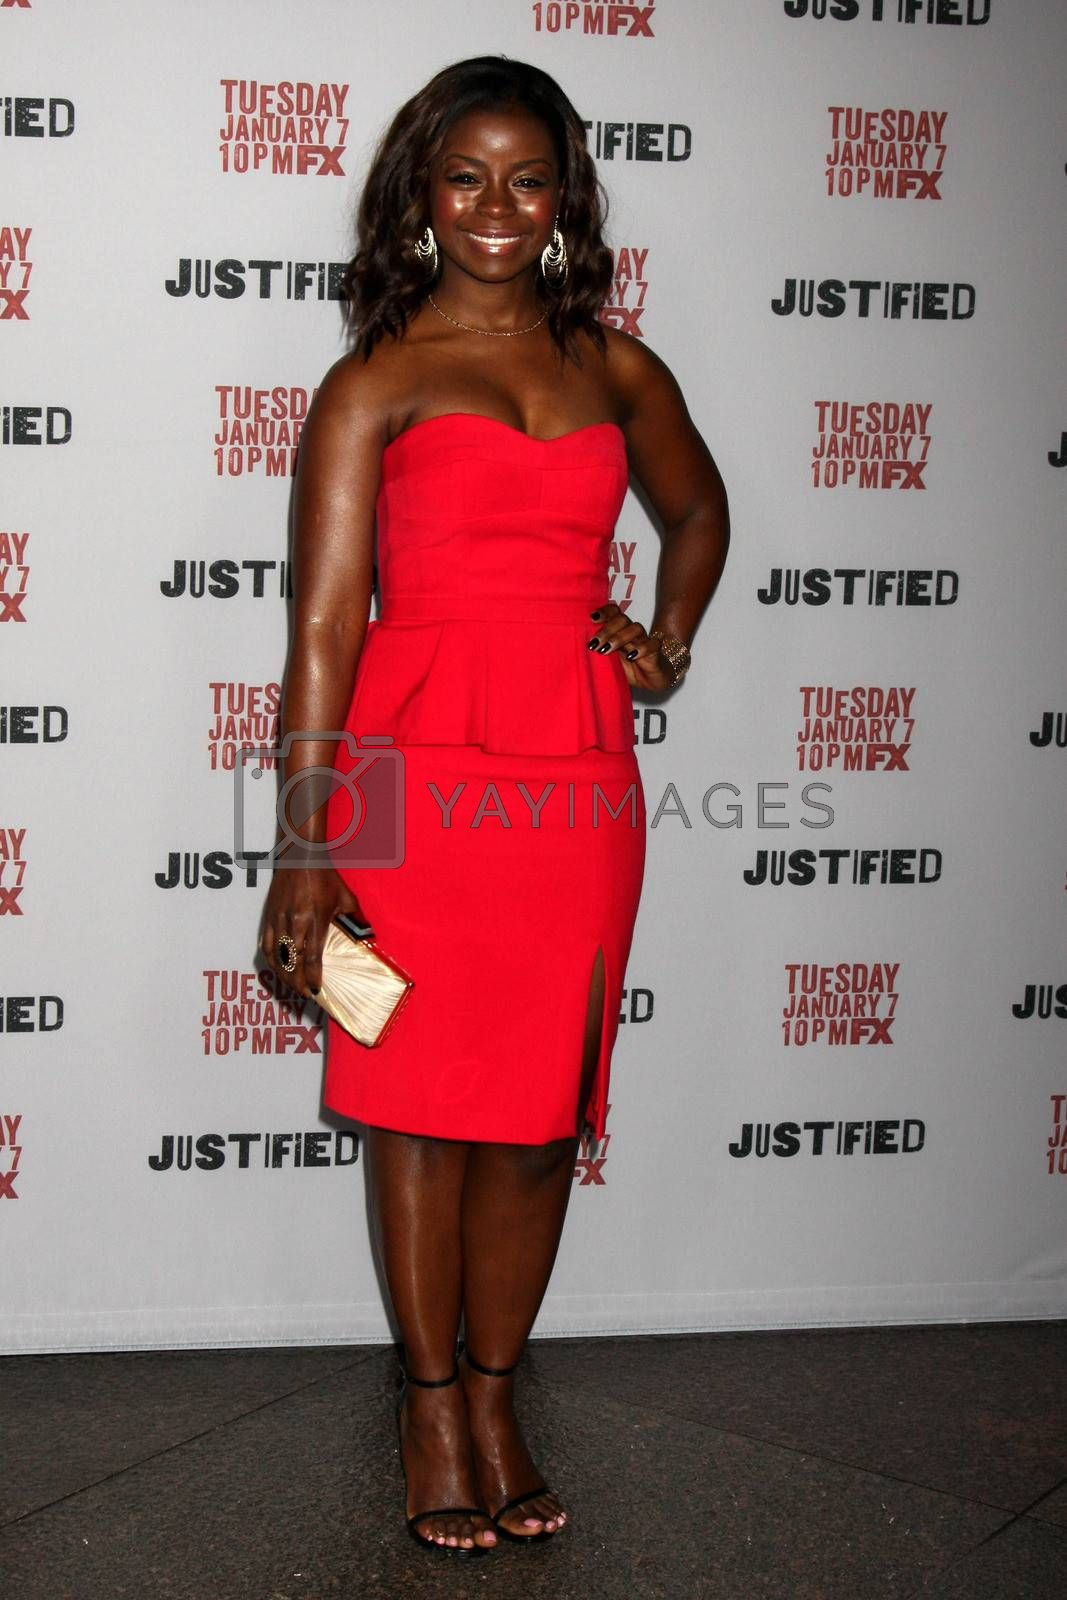 Erica Tazel At The Justified Premiere Screening Directors Guild Of America Los Angeles Ca 01 06 14 Imagecollect Royalty Free Stock Image Stock Photos Royalty Free Images Vectors Footage Yayimages From new york university's graduate acting program. https www yayimages com 12448202 erica tazelat the justified premiere screening directors guild of america los angeles ca 01 06 14imagecollect html